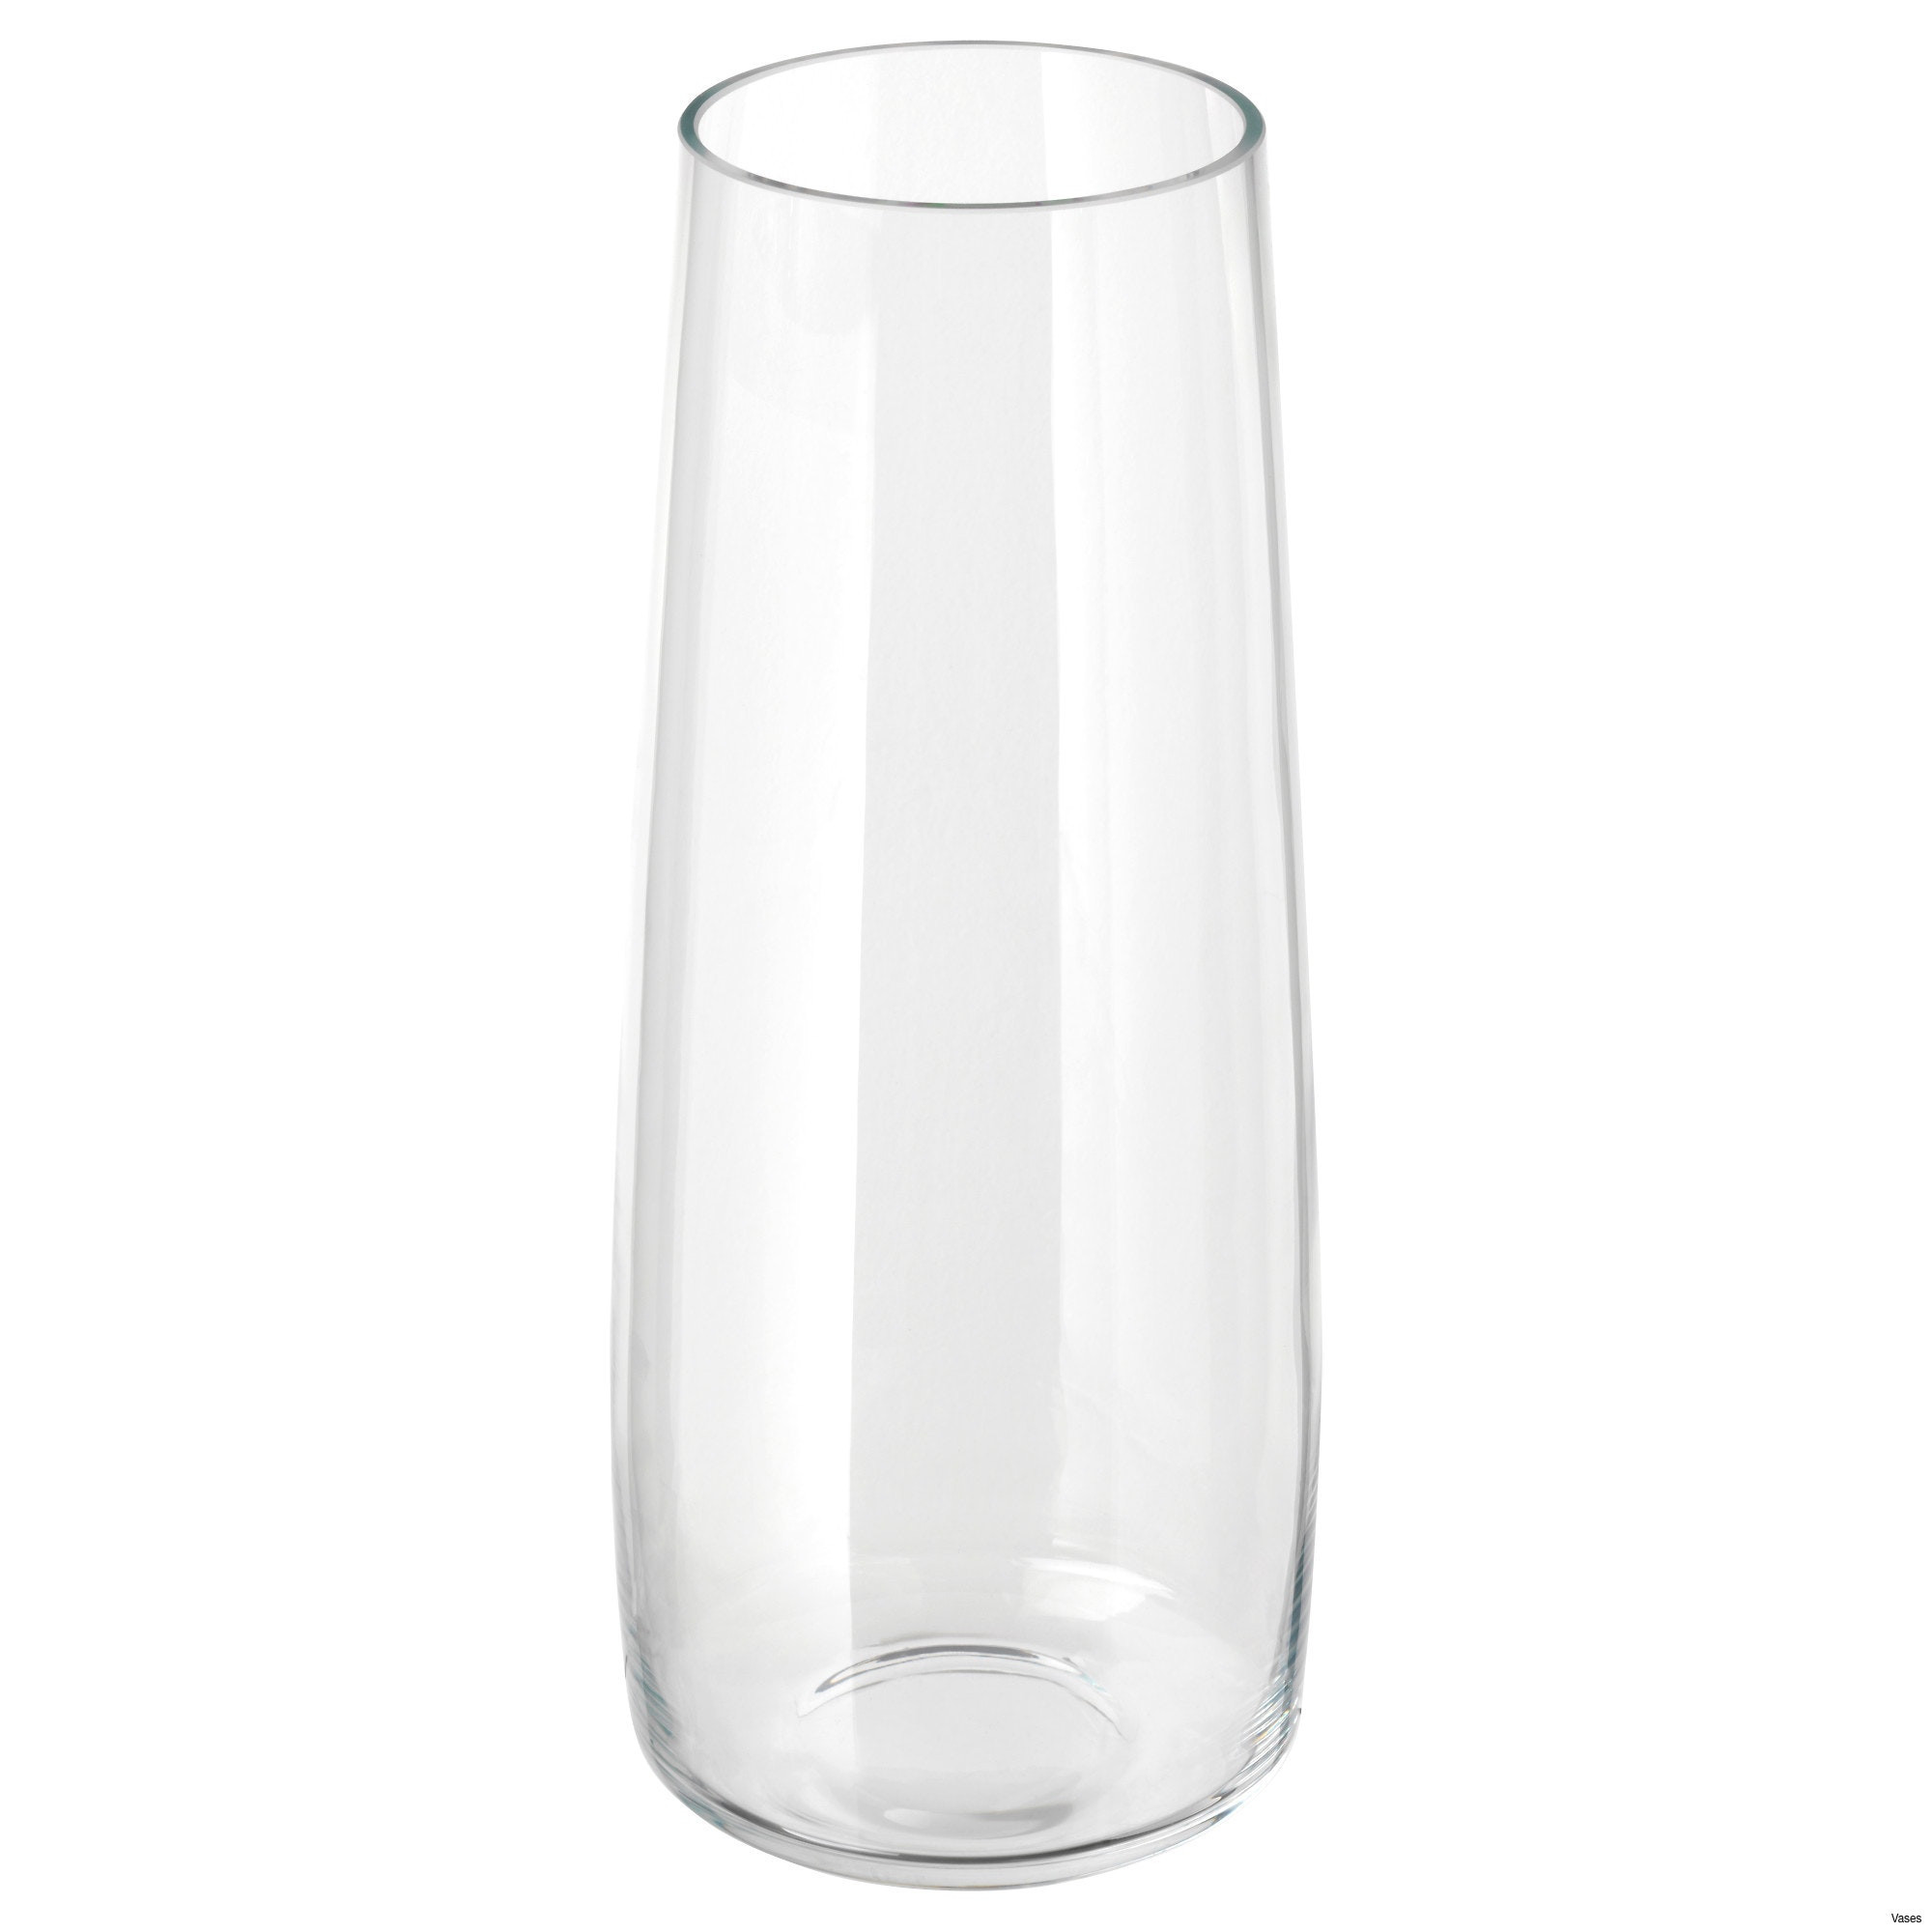 large clear glass cylinder vases of large clear glass vase collection living room glass vases fresh with large clear glass vase pics clear glass planters fresh clear glass vases of large clear glass